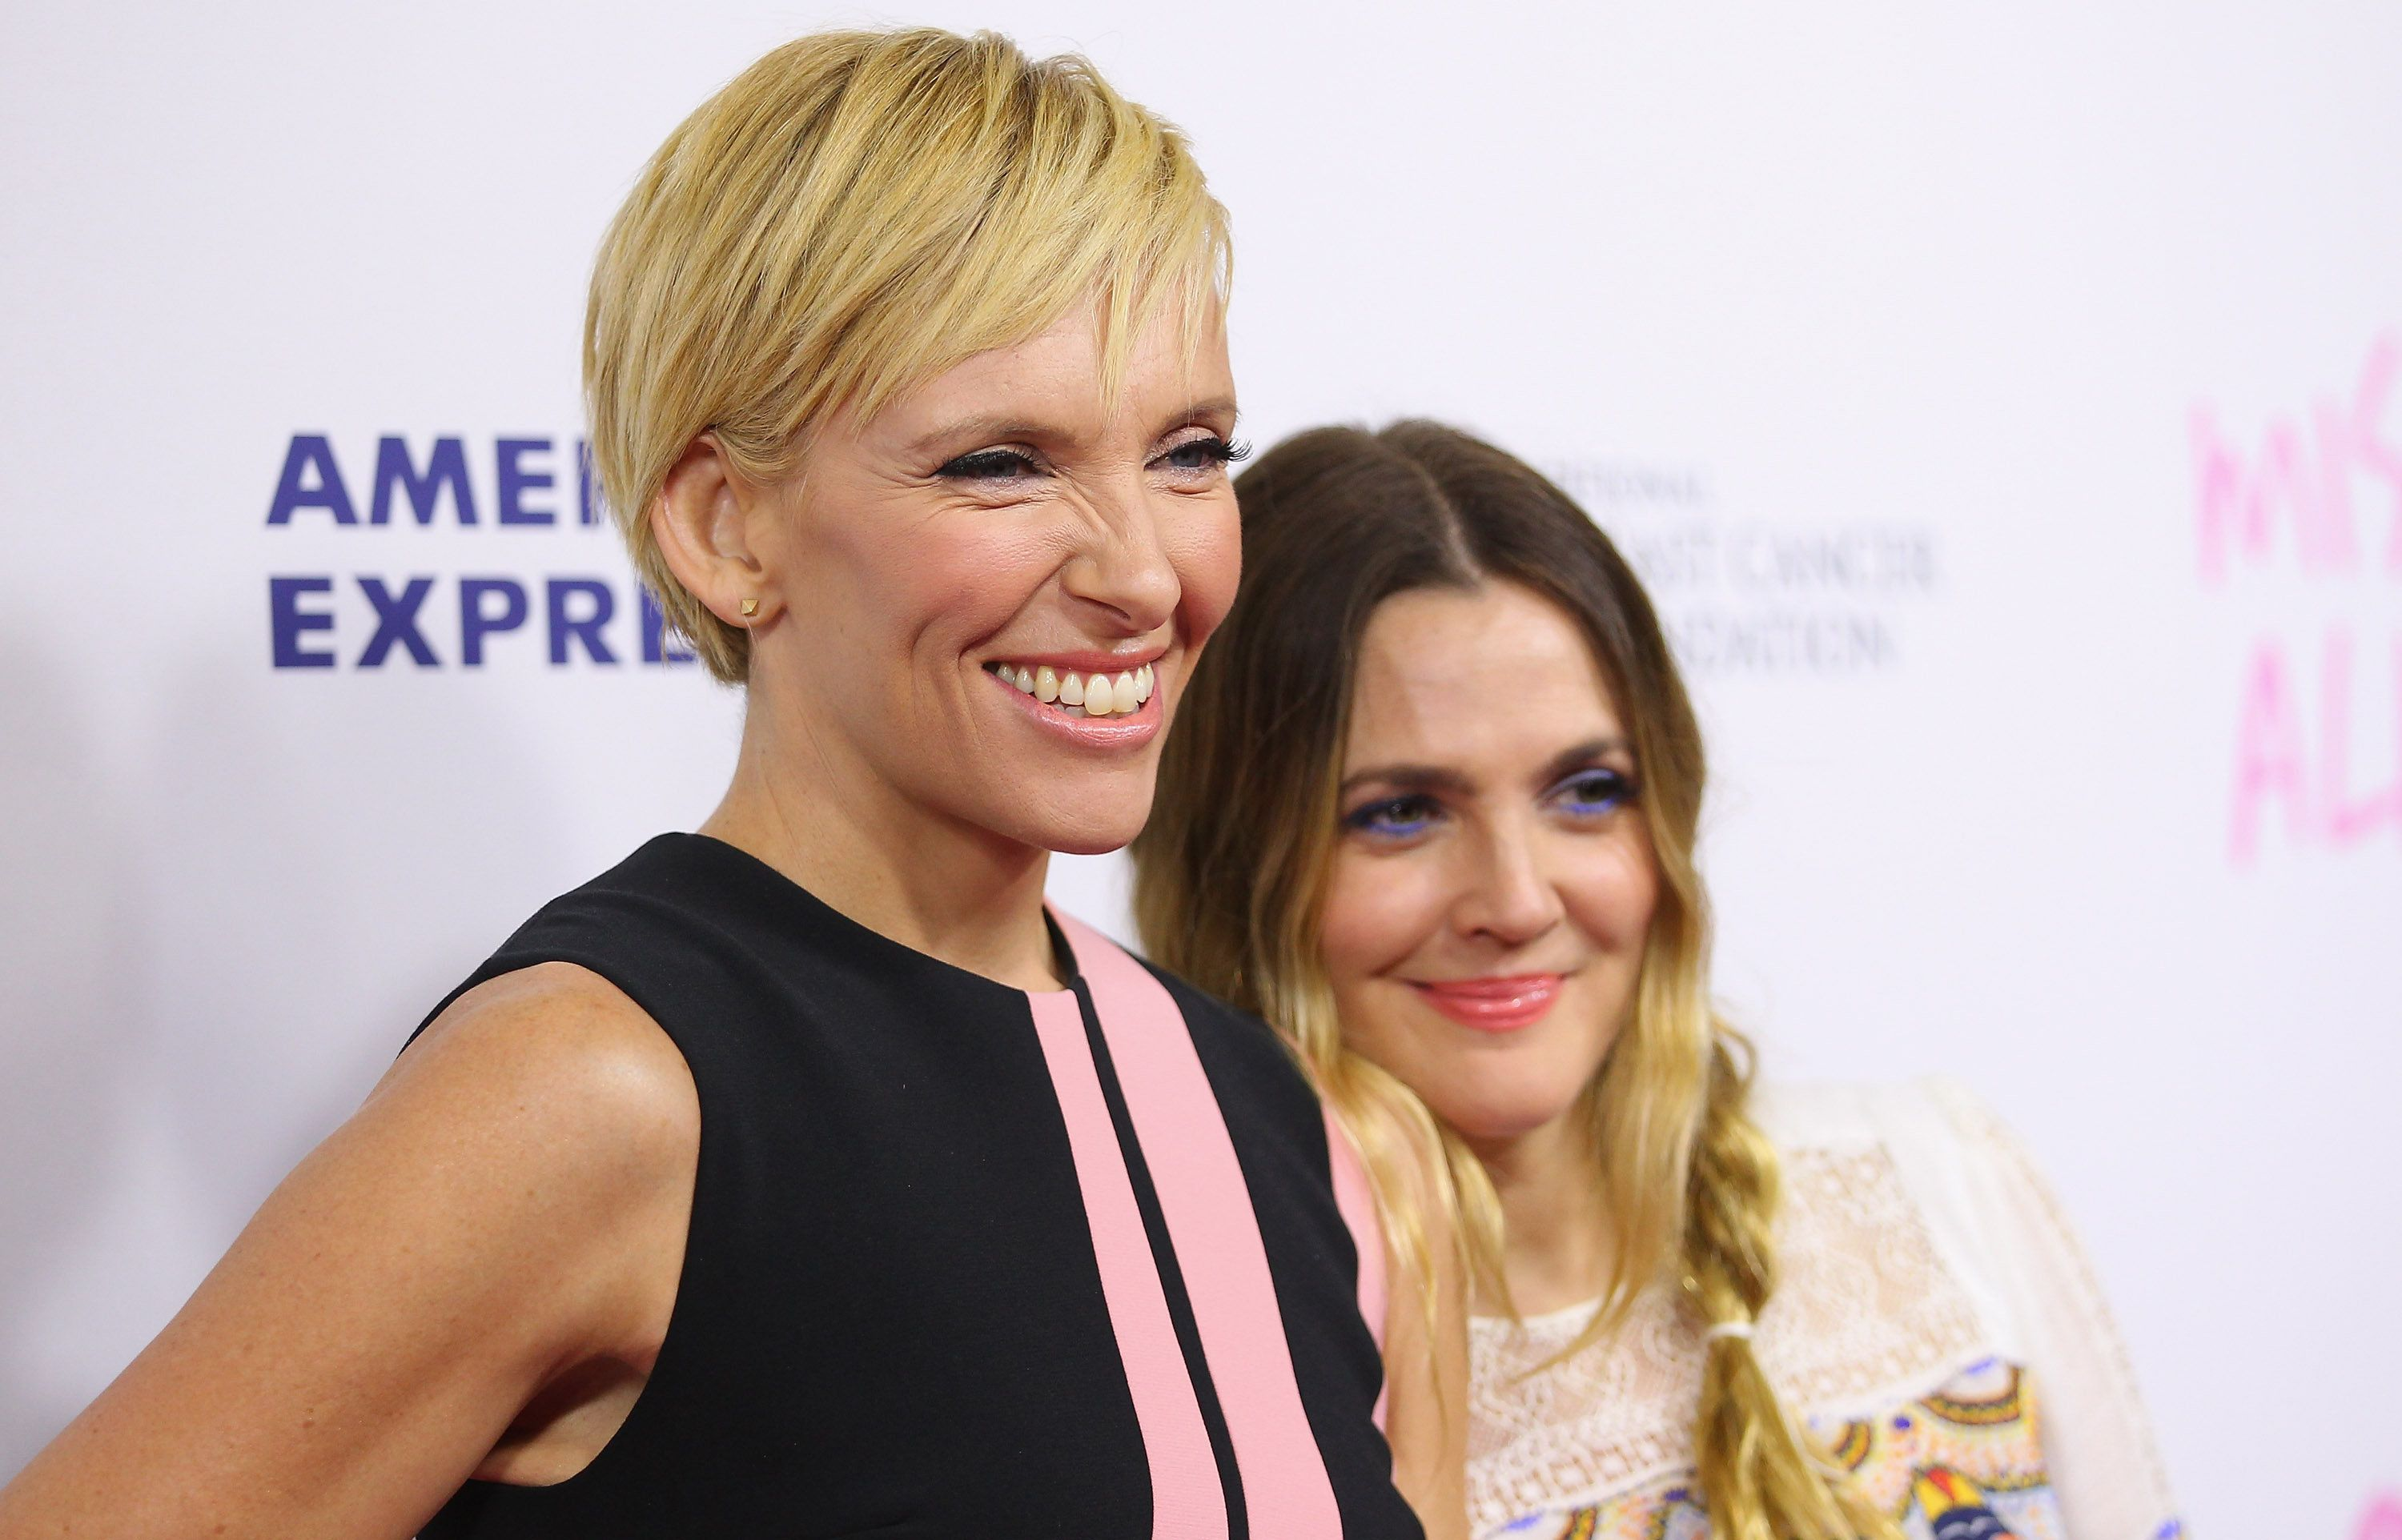 SYDNEY, AUSTRALIA - SEPTEMBER 30:  Toni Collette and Drew Barrymore arrive ahead of the 'Miss You Already' gala premiere at the State Theatre on September 30, 2015 in Sydney, Australia.  (Photo by Don Arnold/WireImage)